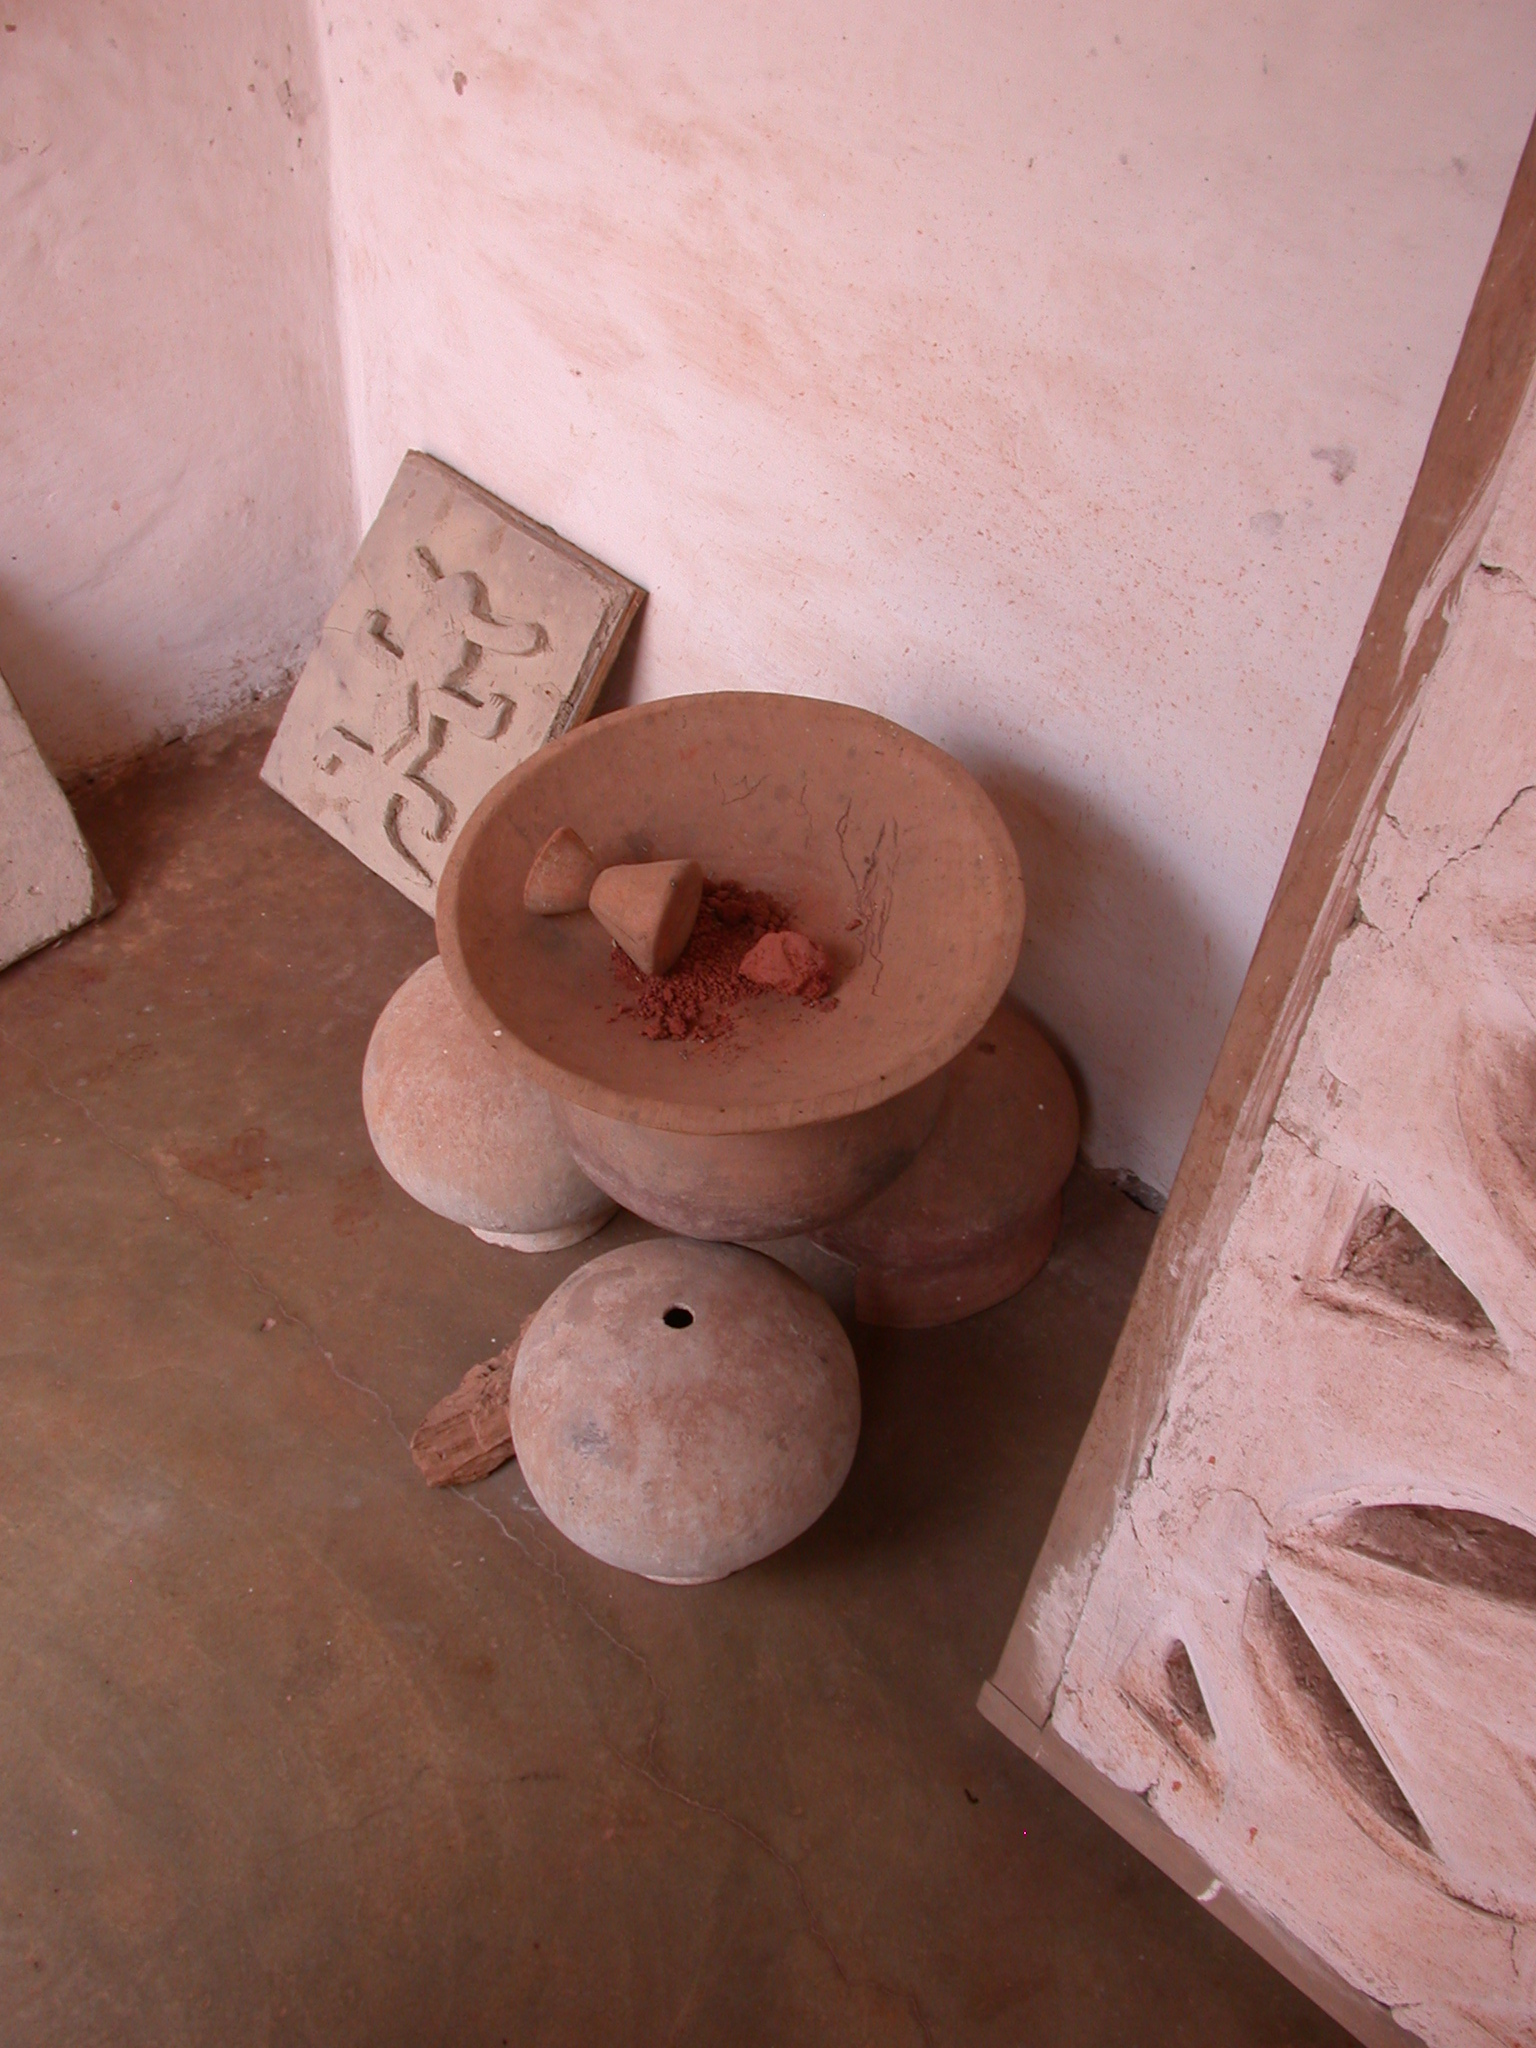 Asante Traditional Mortar and Pestle, Asante Traditional Shrine at Ejisu-Besease, Ghana